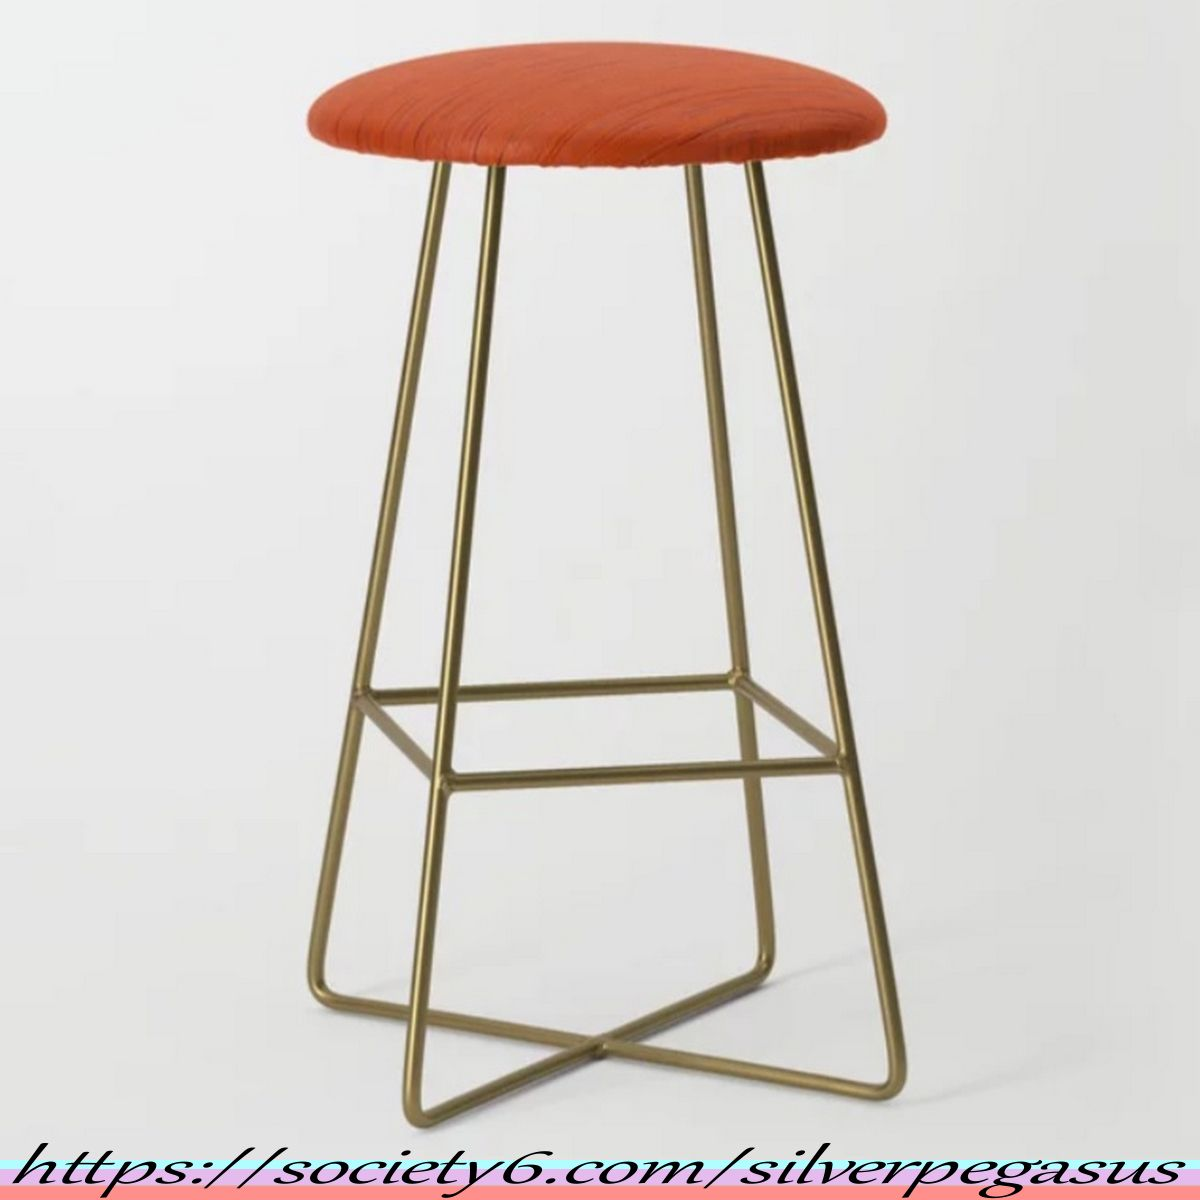 Shop For Meteor Stripes Rust Orange Bar Stool By C Silverpegasus